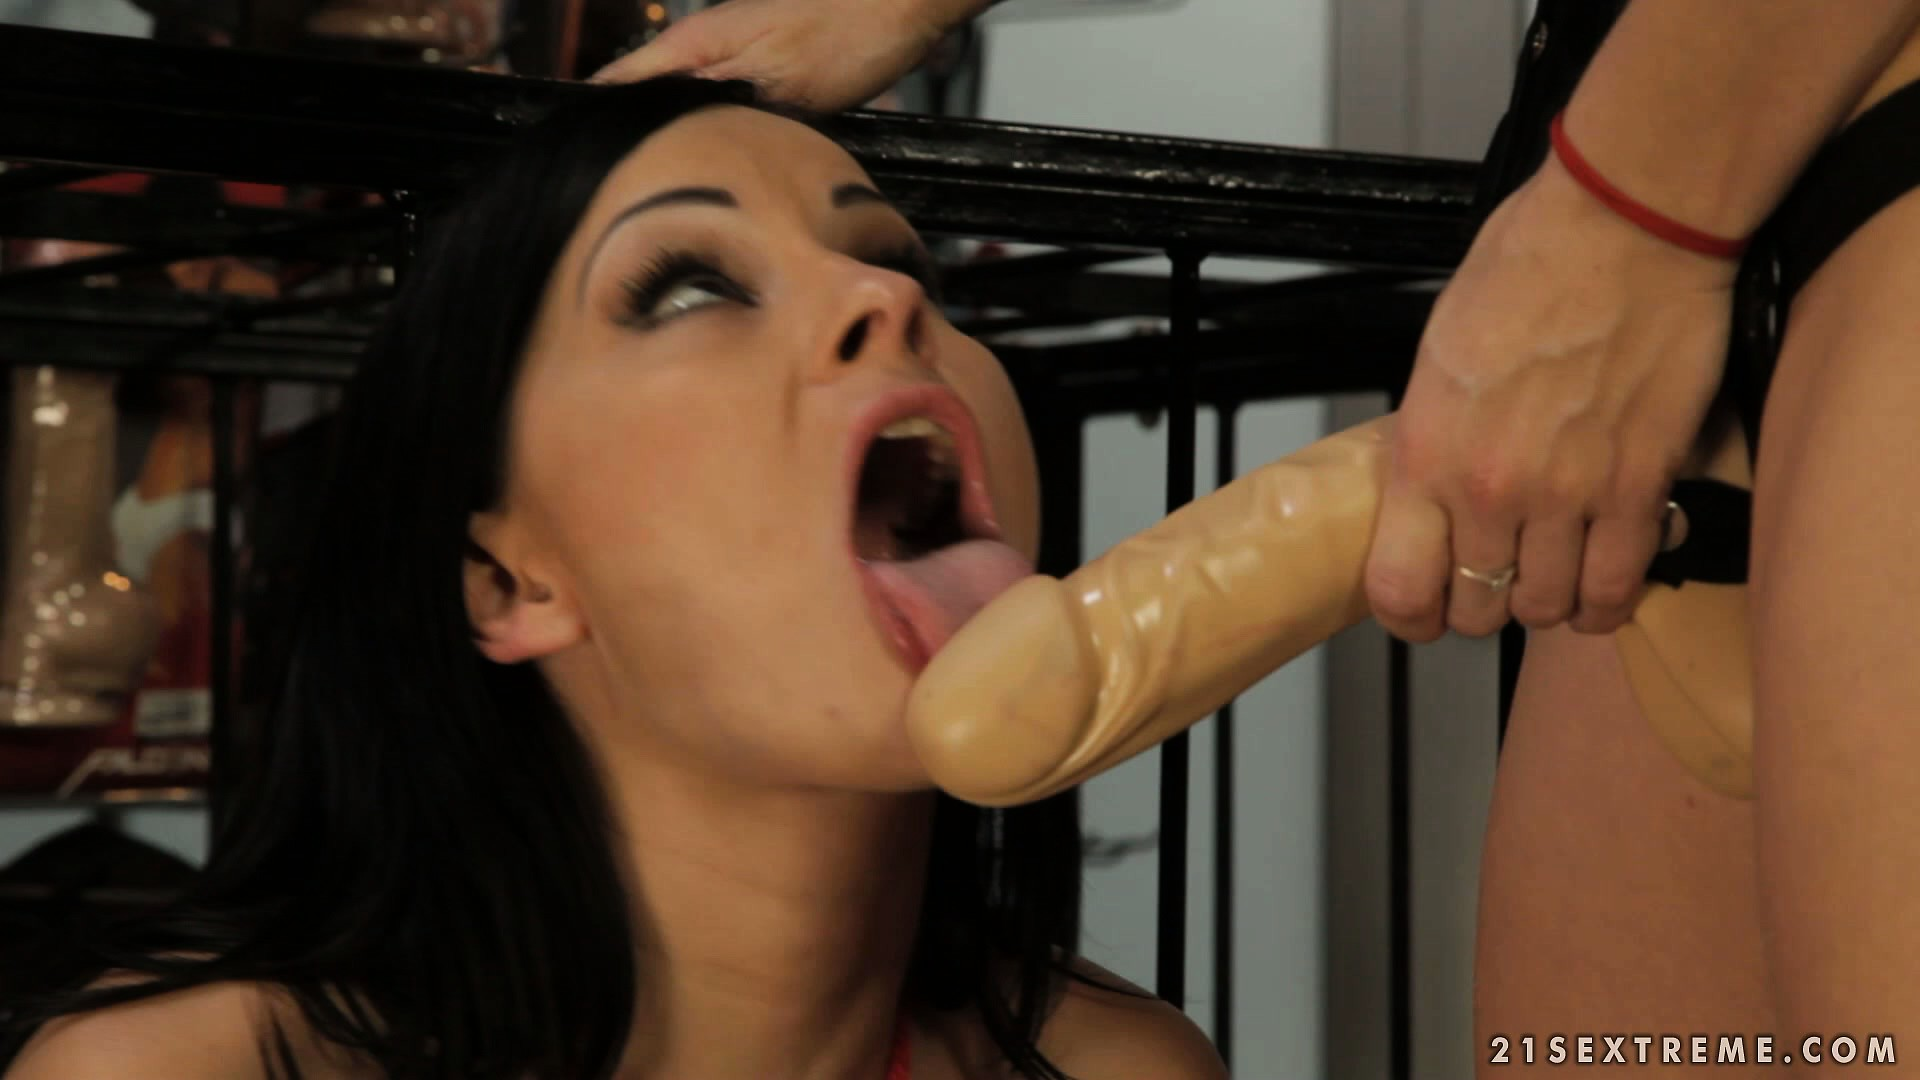 Porn Tube of Wannabe Slavegirl Ready To Be Pushed Into The Cage And Dominated